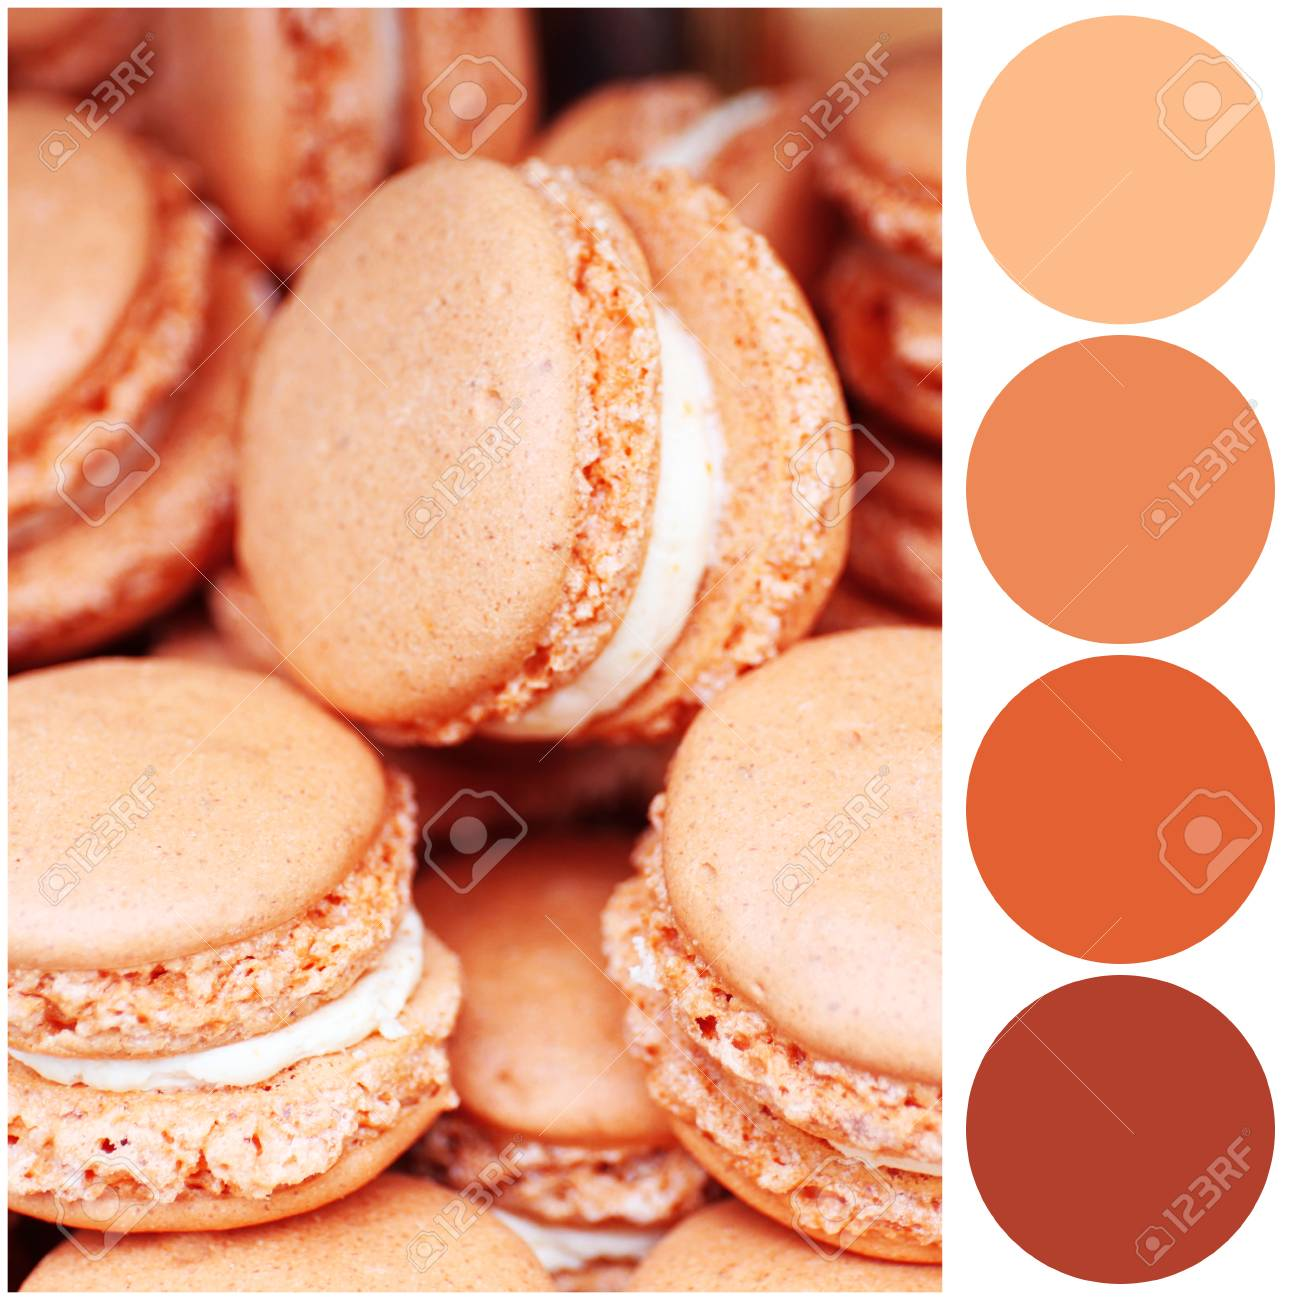 Apricot color matching palette  Tasty macarons, closeup